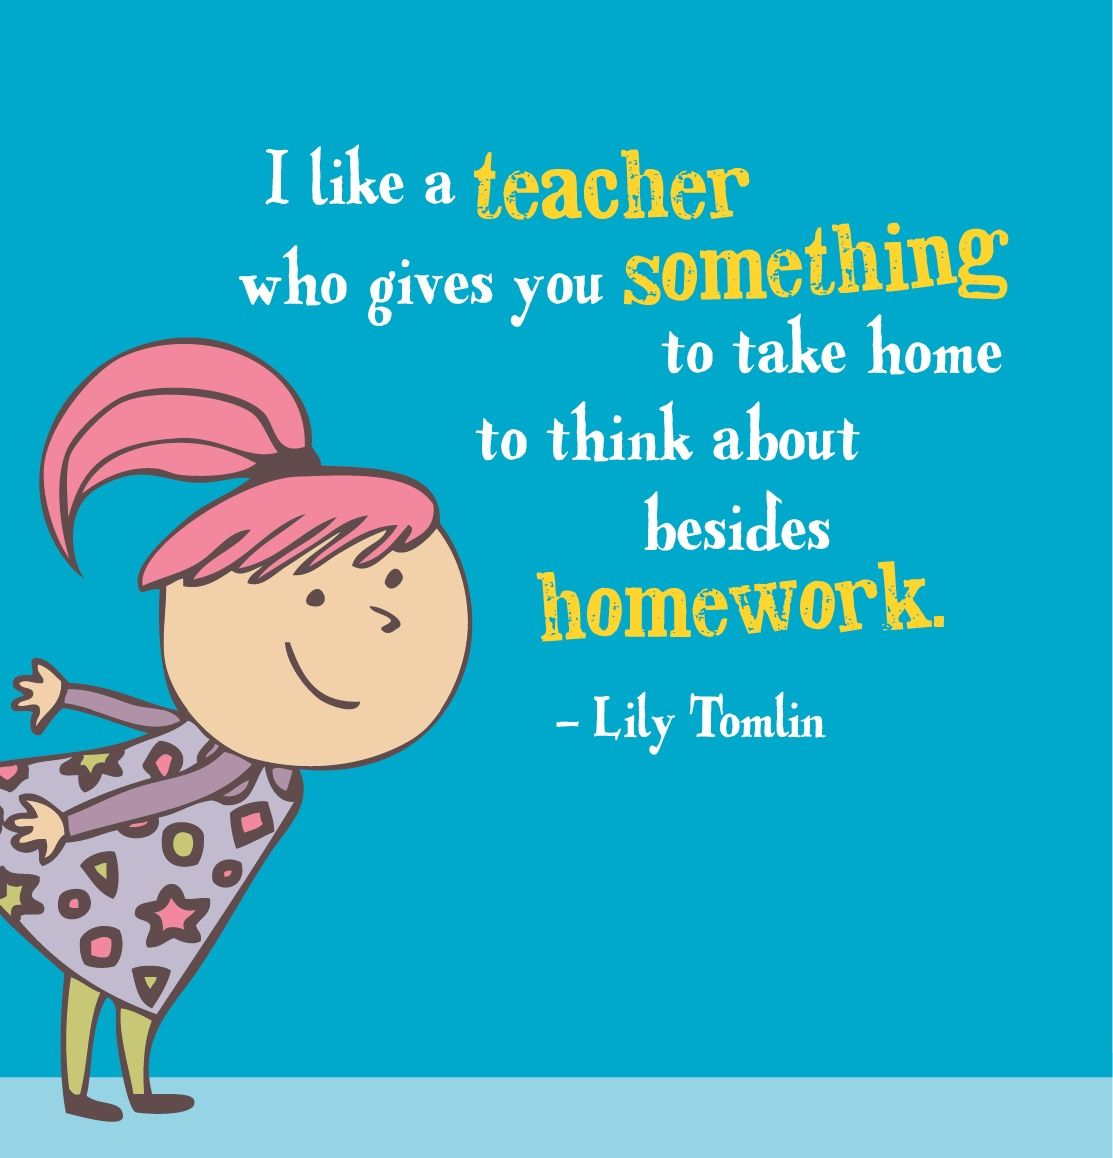 Quotes To Teacher: Nice Quotes For Teachers!